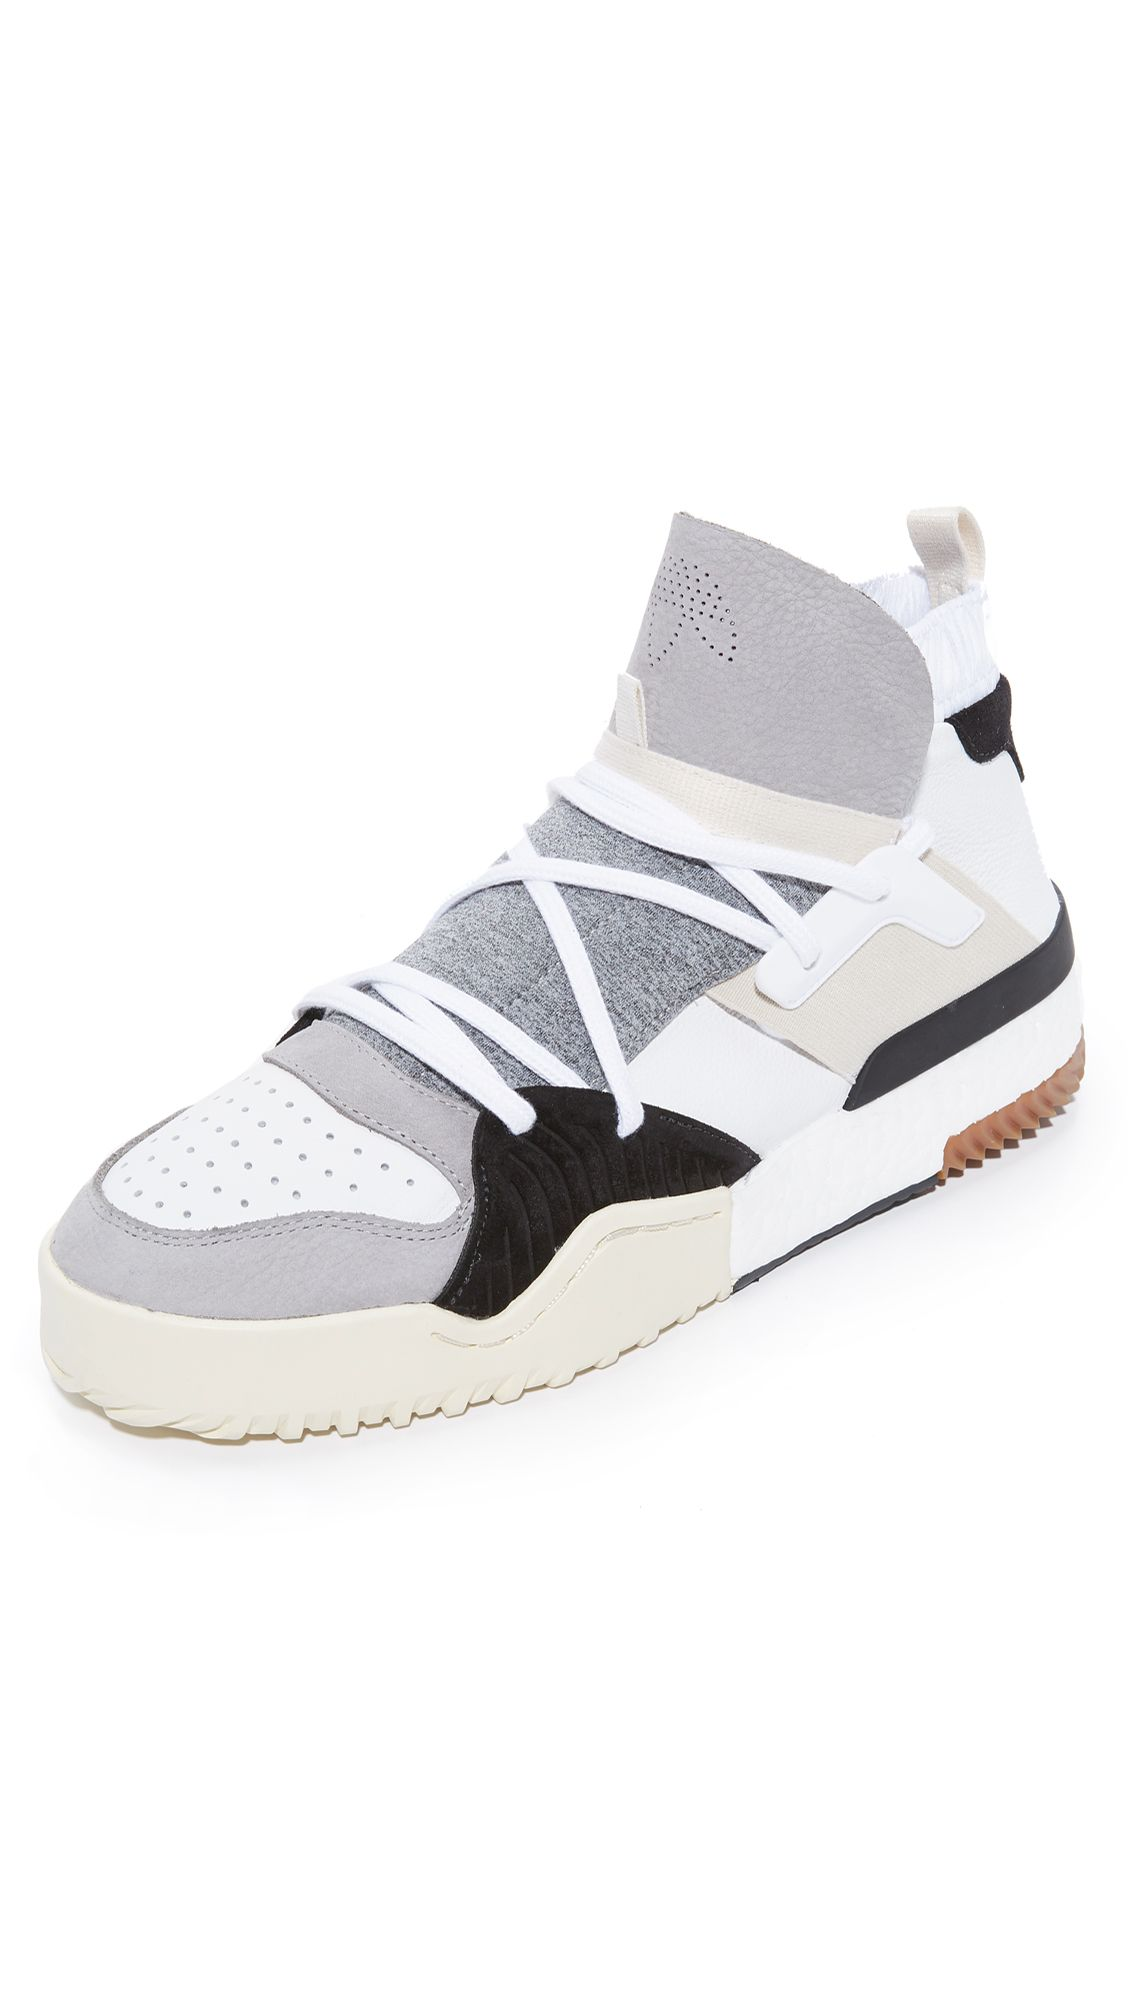 new concept 8c845 e5628 ADIDAS ORIGINALS BY ALEXANDER WANG Aw B Ball Sneakers.  adidasoriginalsbyalexanderwang shoes sneakers